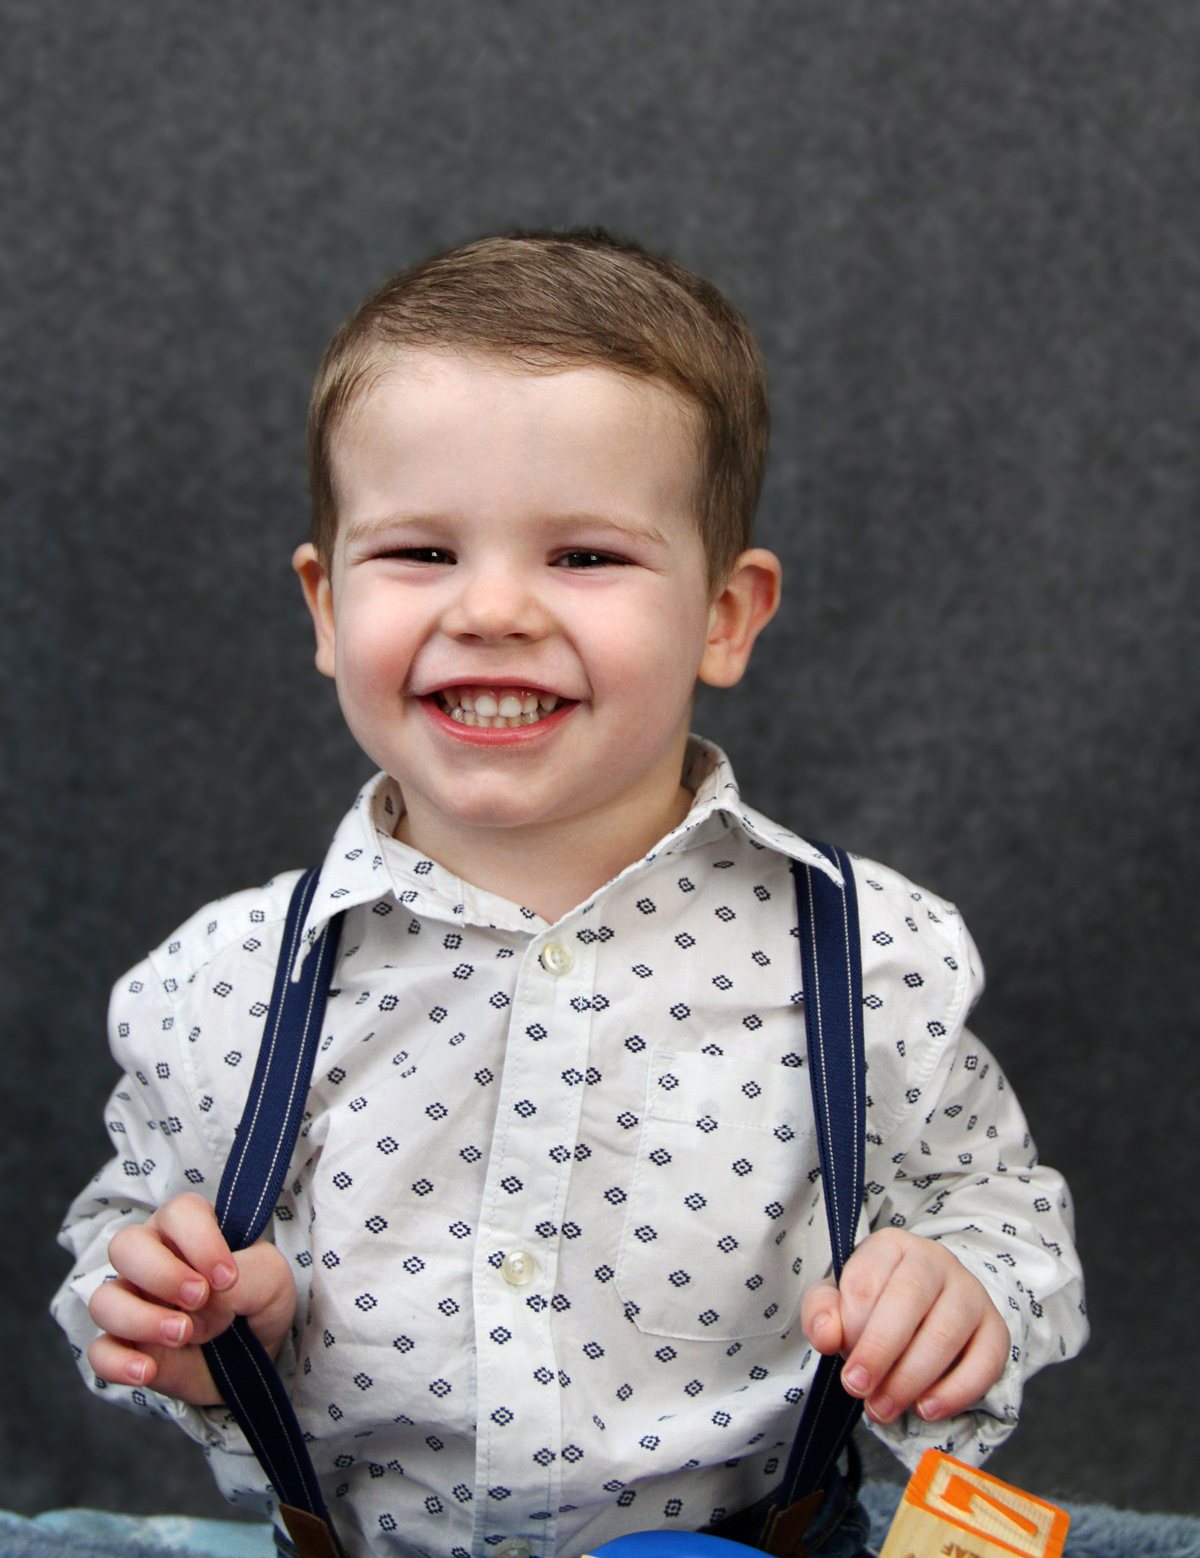 Toddler Boy Smiling